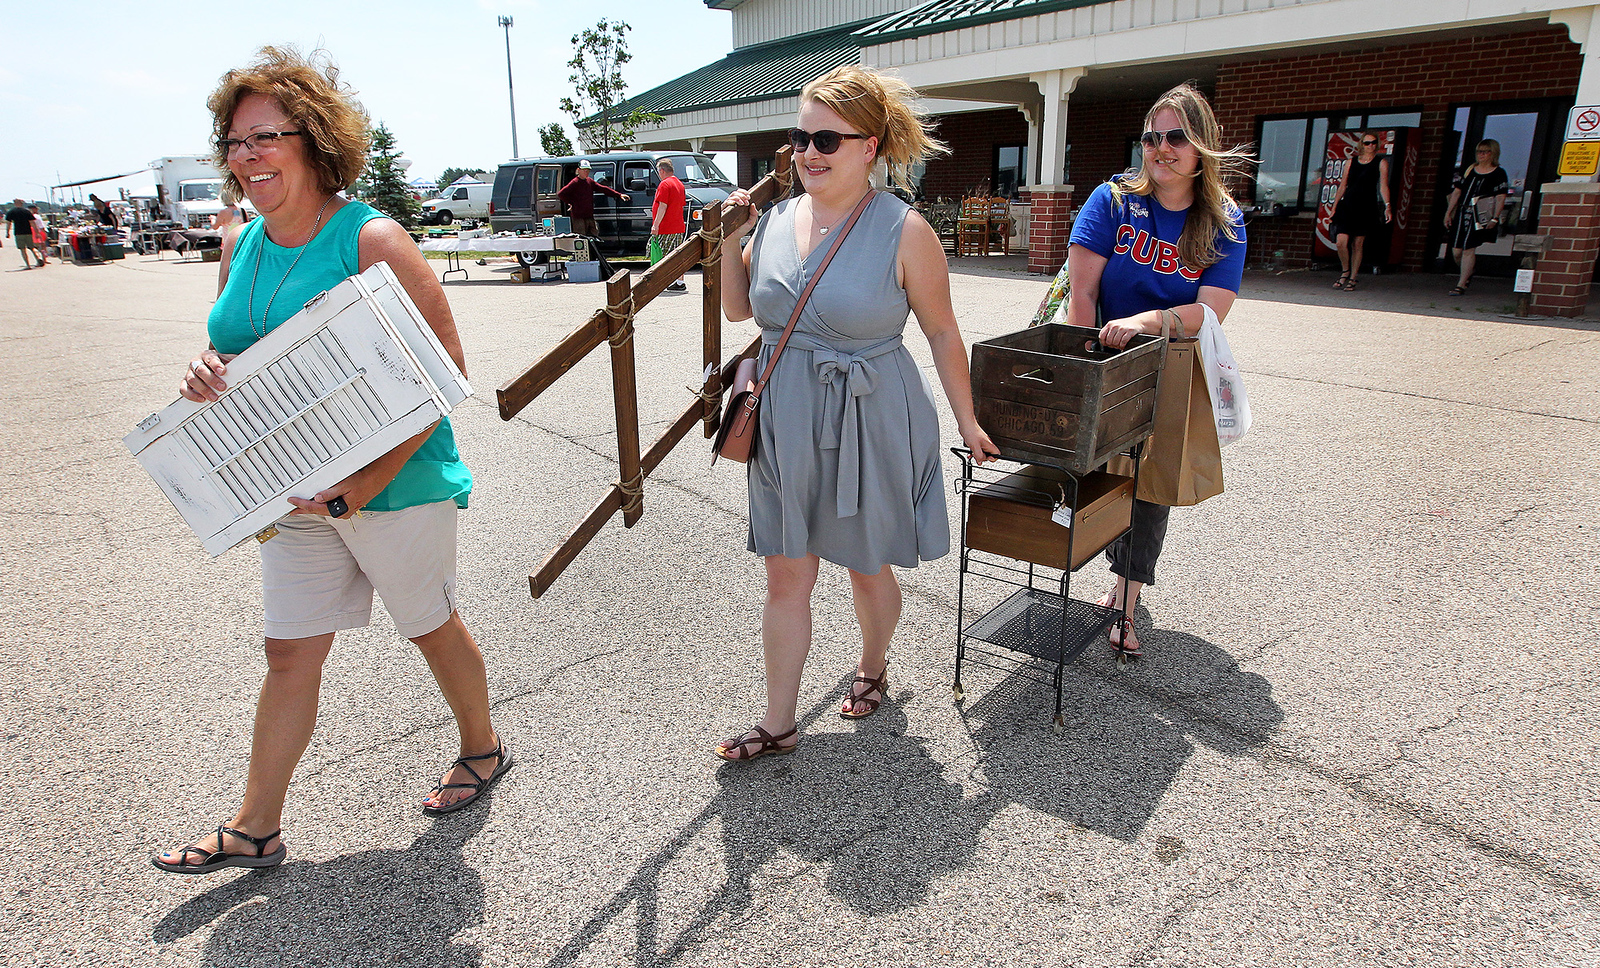 Candace H. Johnson-For Shaw Media Diane Wolanik, her daughter-in-law Jennifer, both of Crystal Lake, and Stephanie Knudson, of Lake Zurich head to their car with some items they bought at the Grayslake Antique & Vintage Market at the Lake County Fairgrounds in Grayslake.